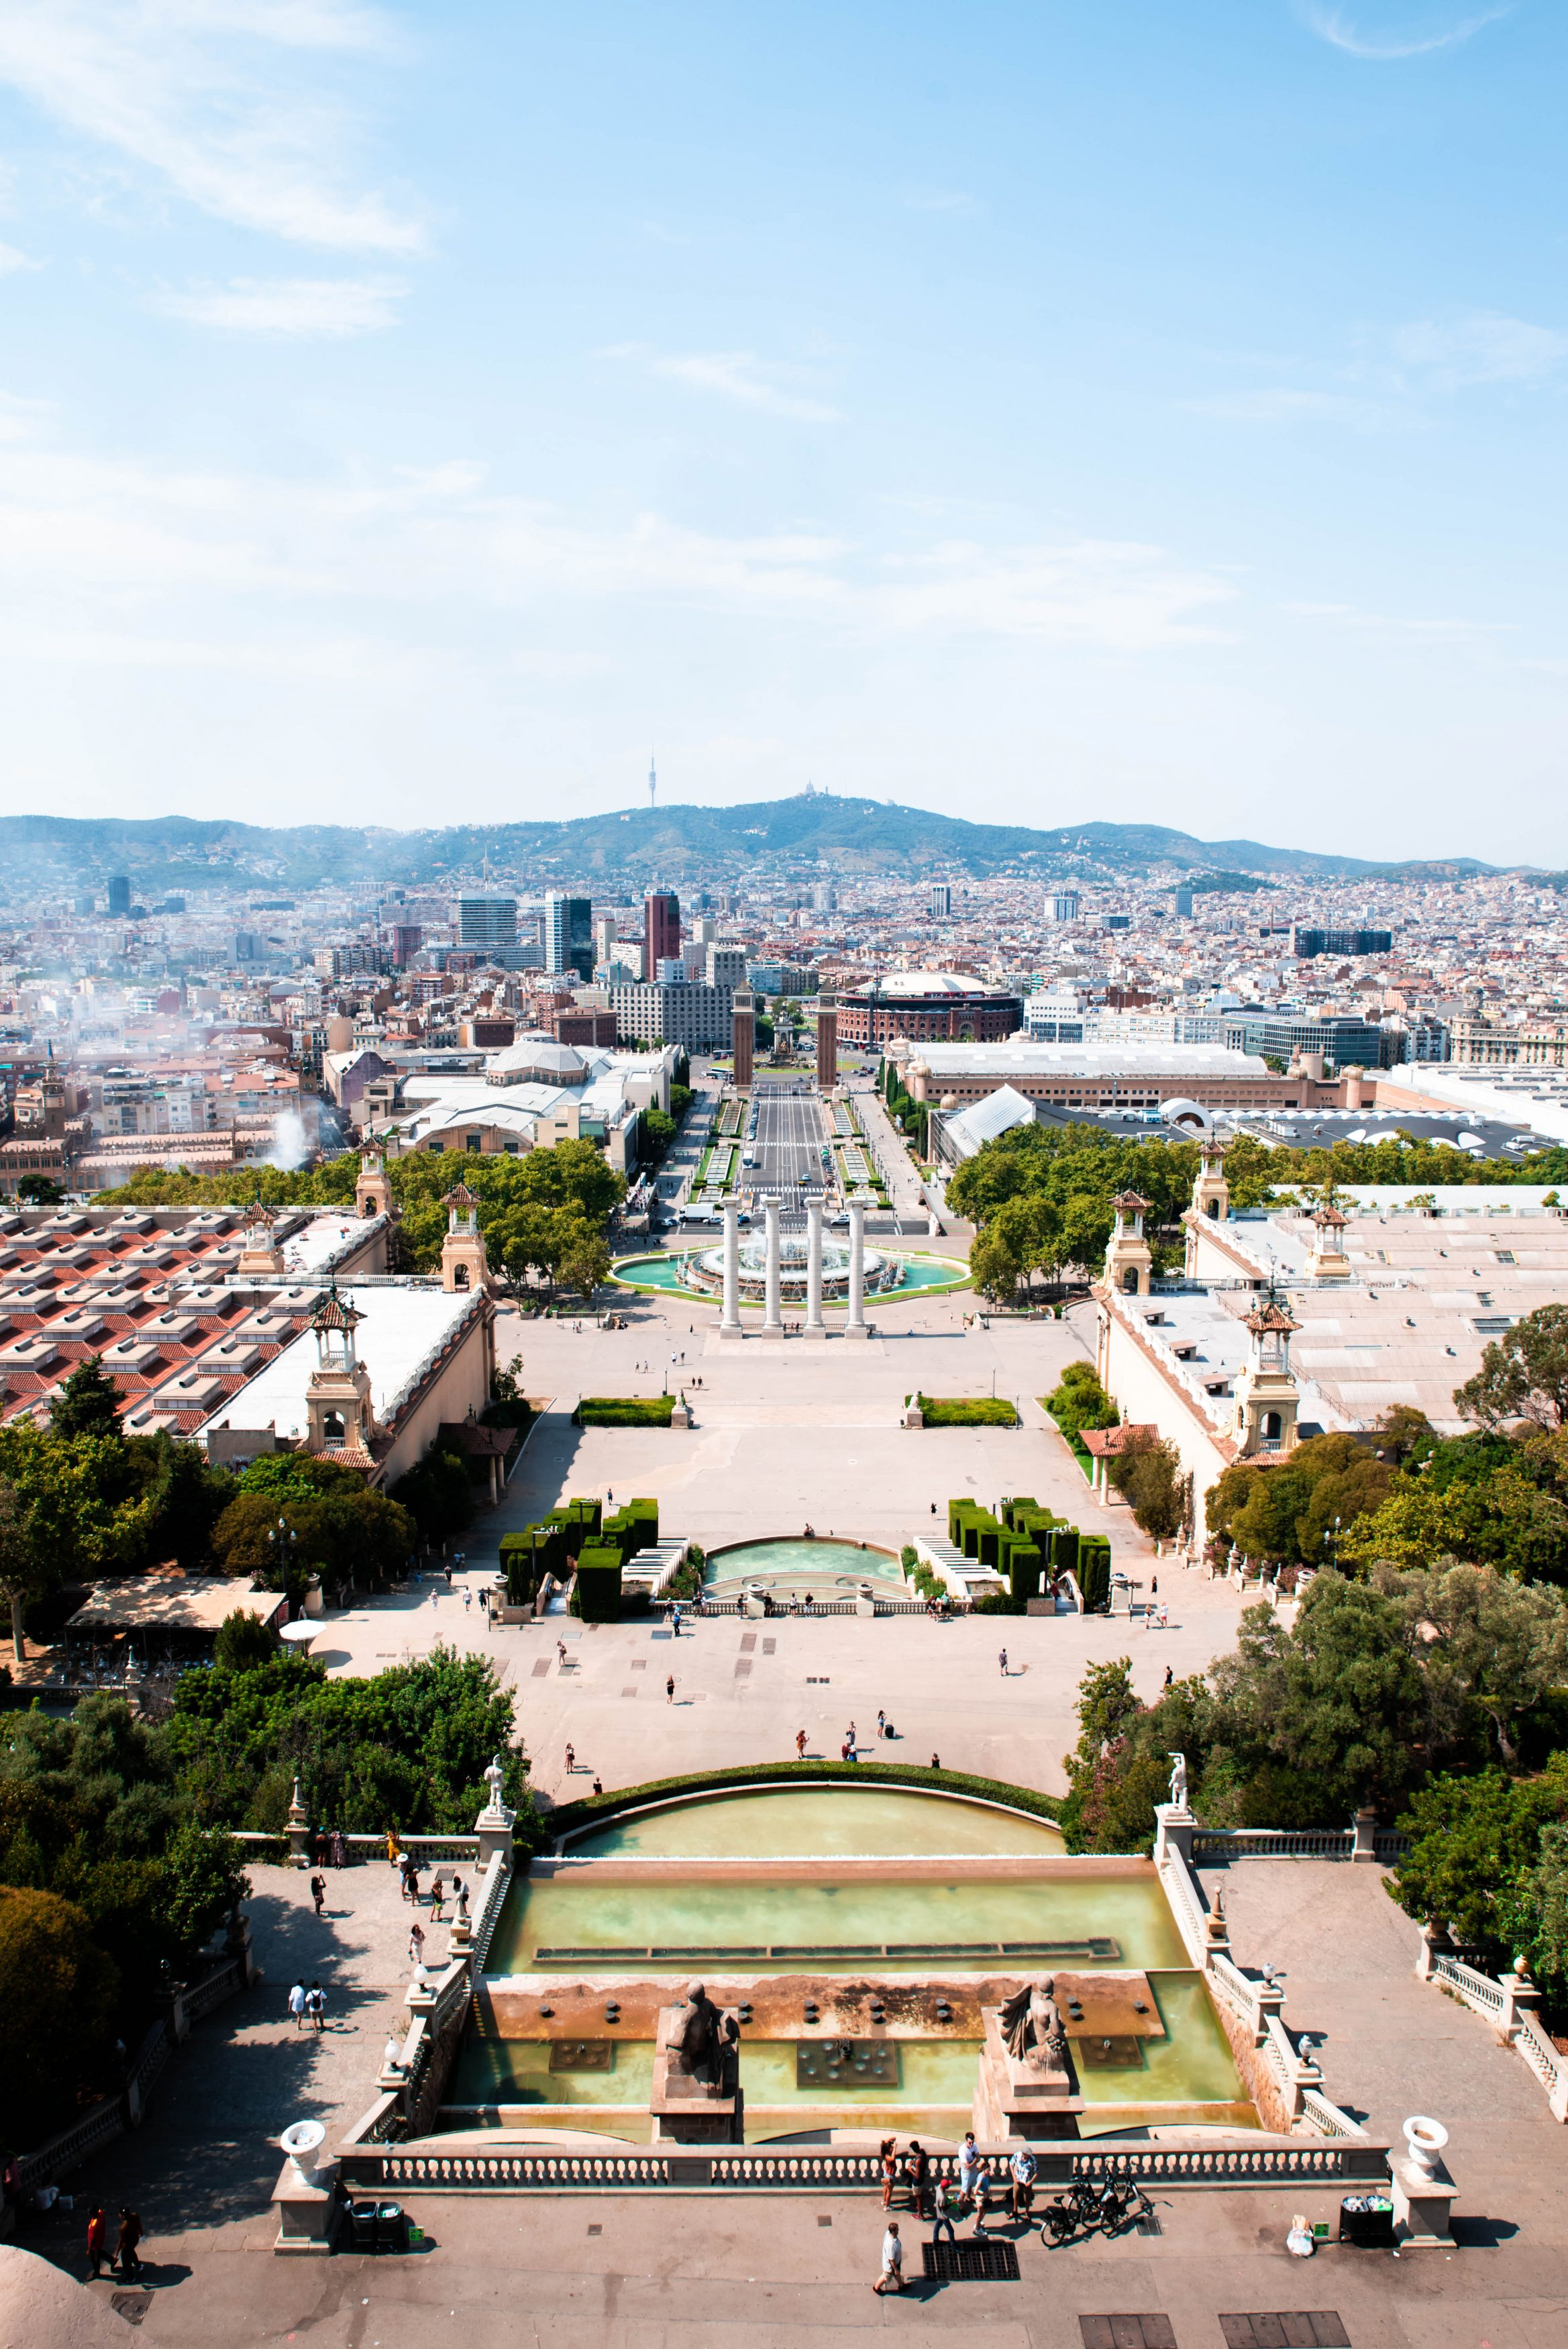 Rooftop terrace views from Barcelona's MNAC museum.